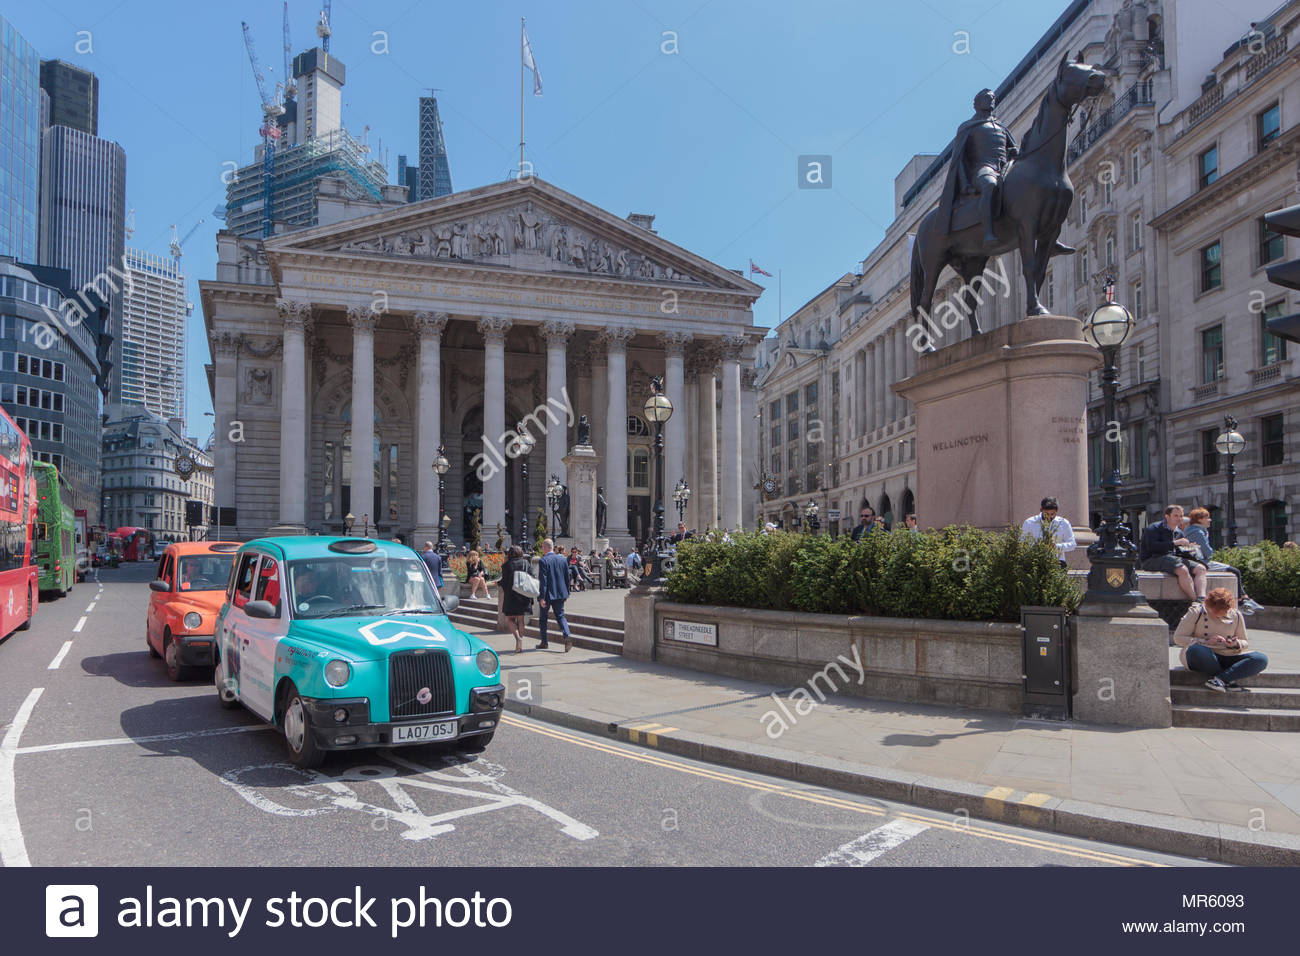 Threadneedle Street in the City of London. In the foreground is a London Hackney cab covered in blue advertising. - Stock Image